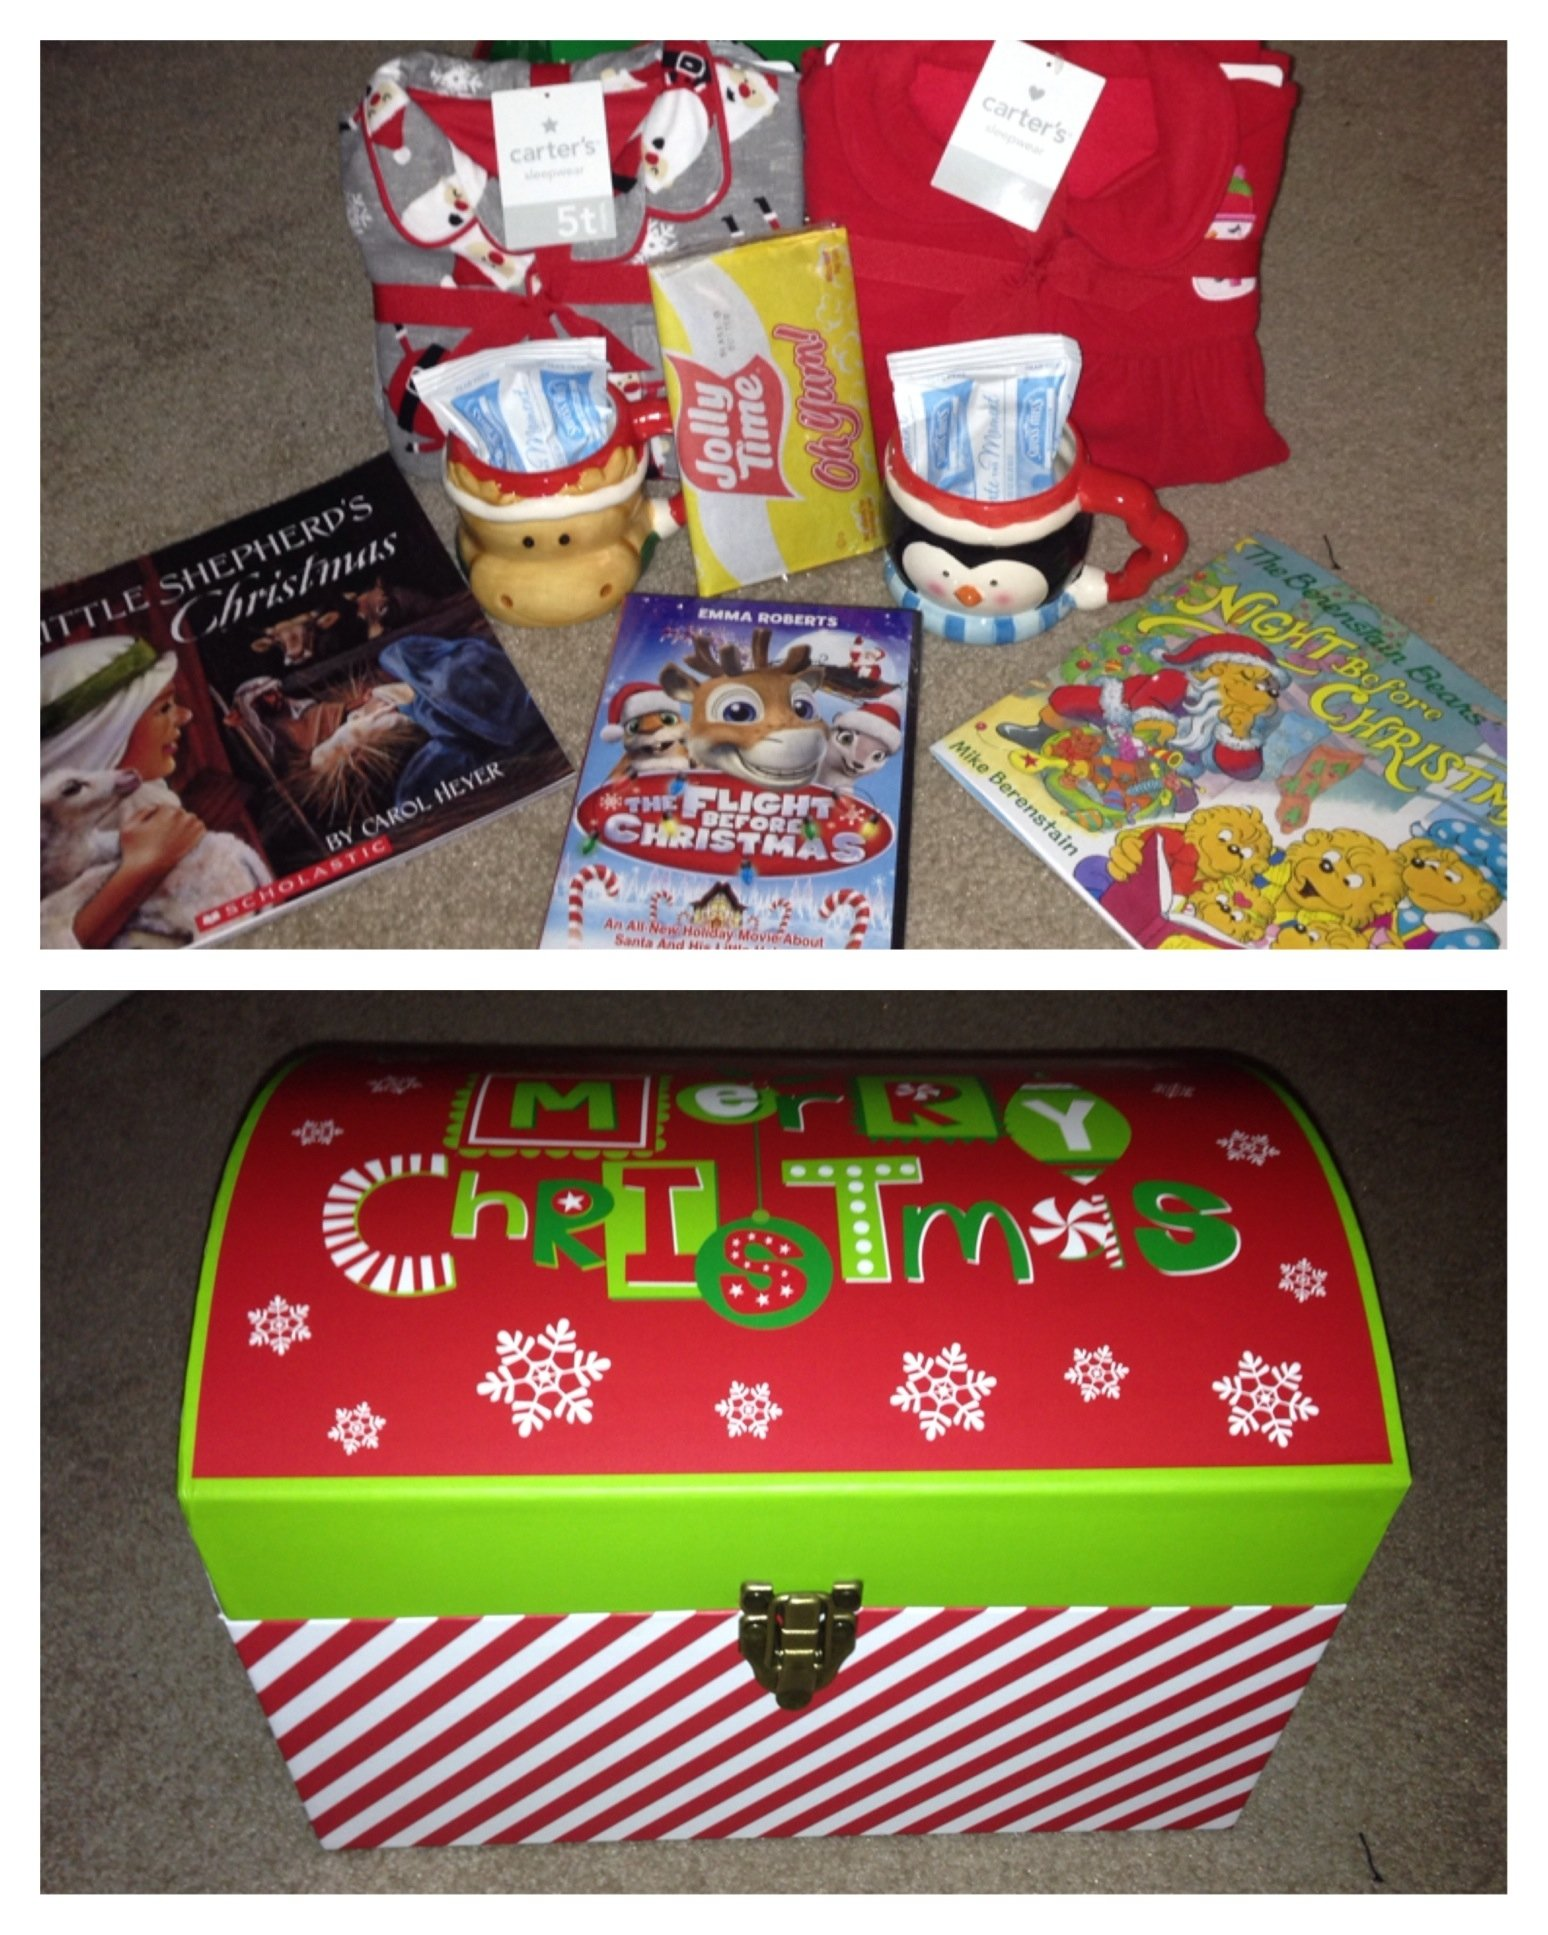 10 Gorgeous Christmas Eve Ideas For Kids night before christmas box a family tradition chocolate snacks 2021